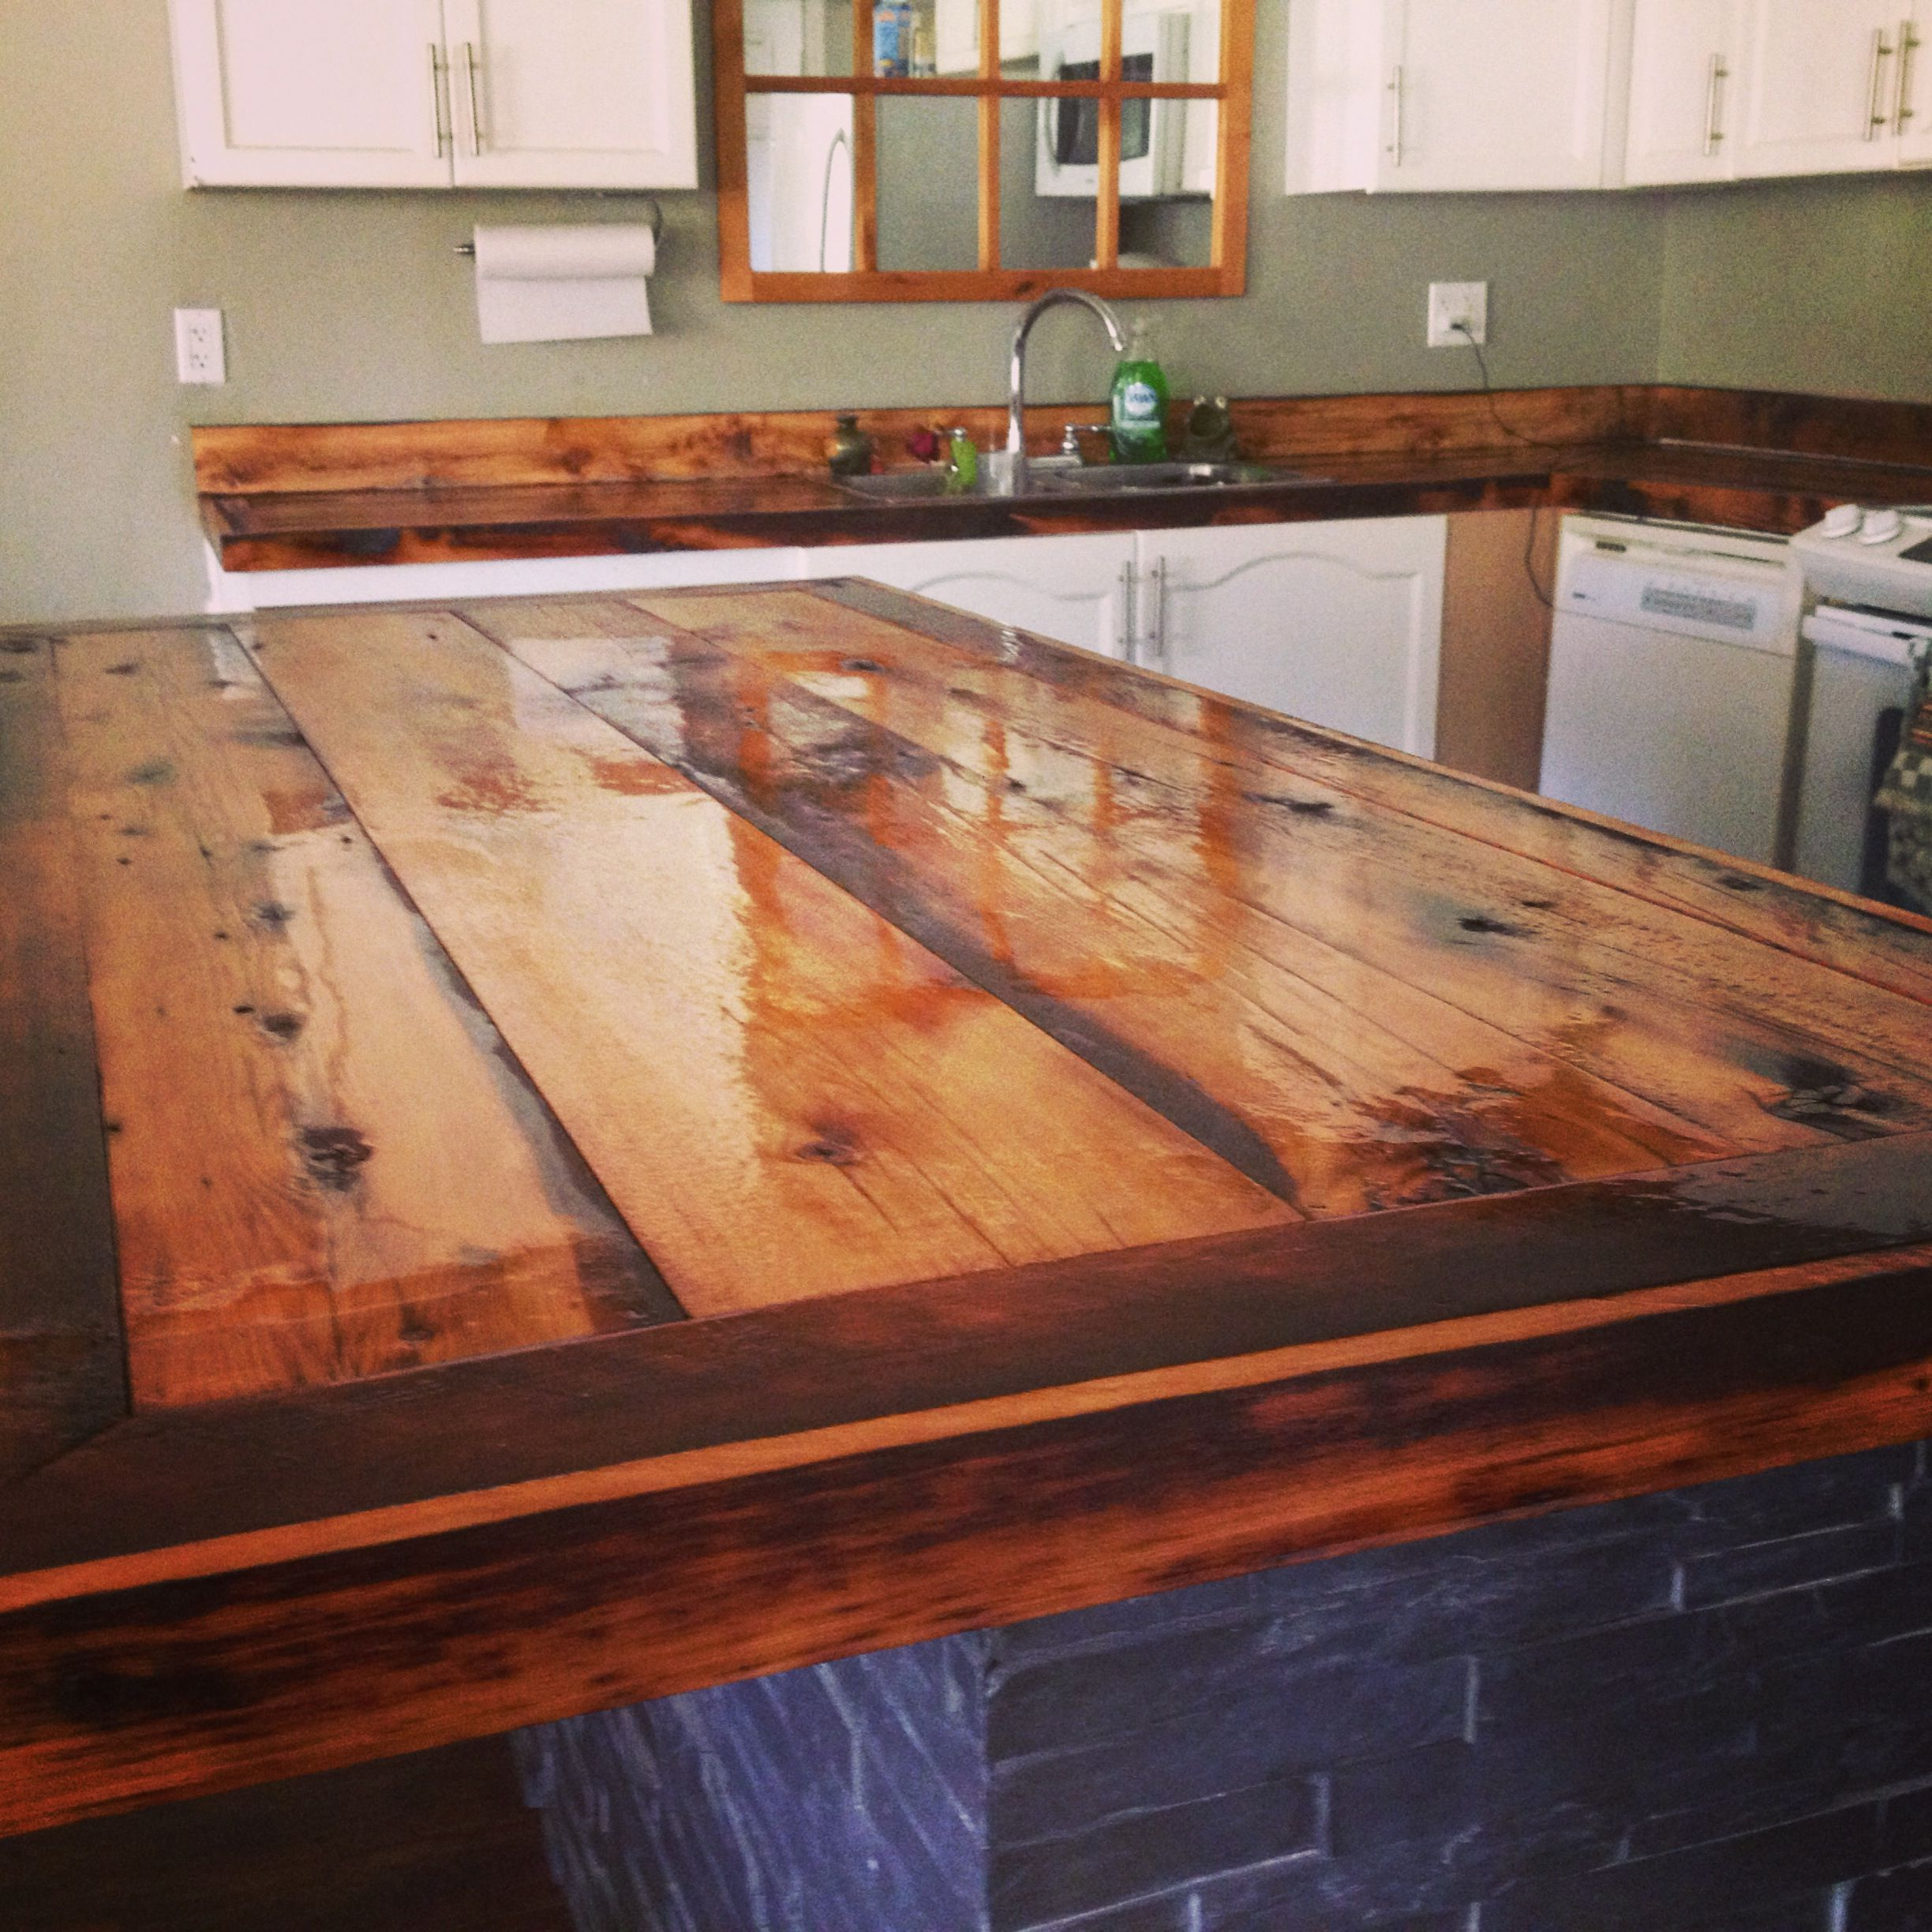 Diy Countertops Rustic Barn Board Diy Countertops Diy Kitchen